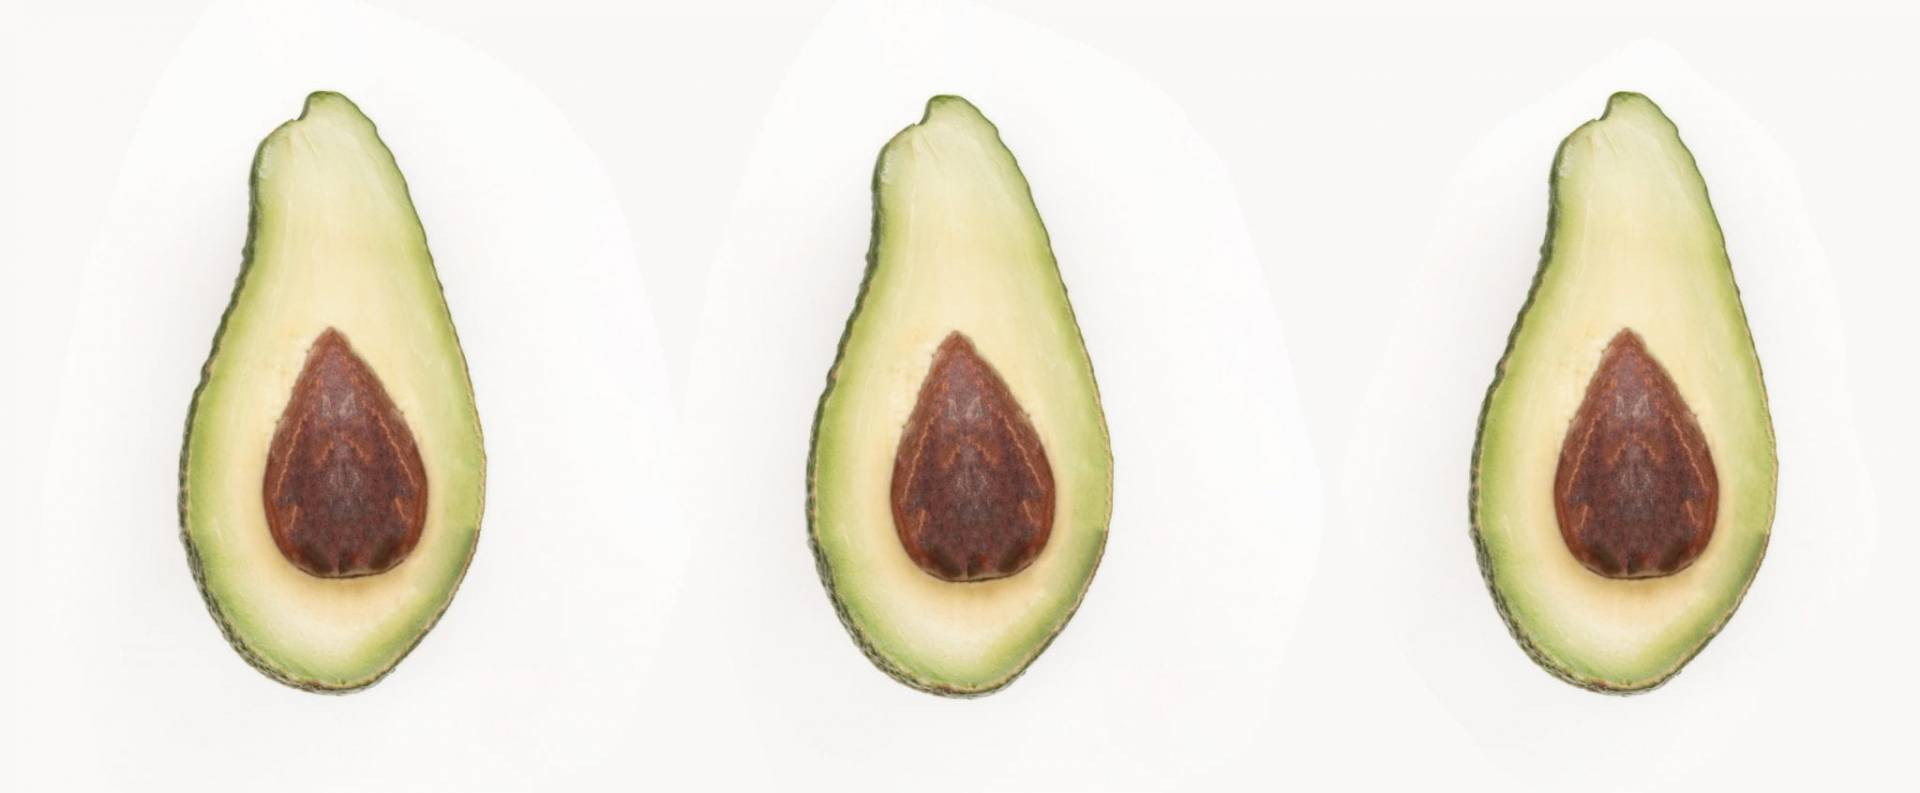 Healthy Office Snacks - Avocado